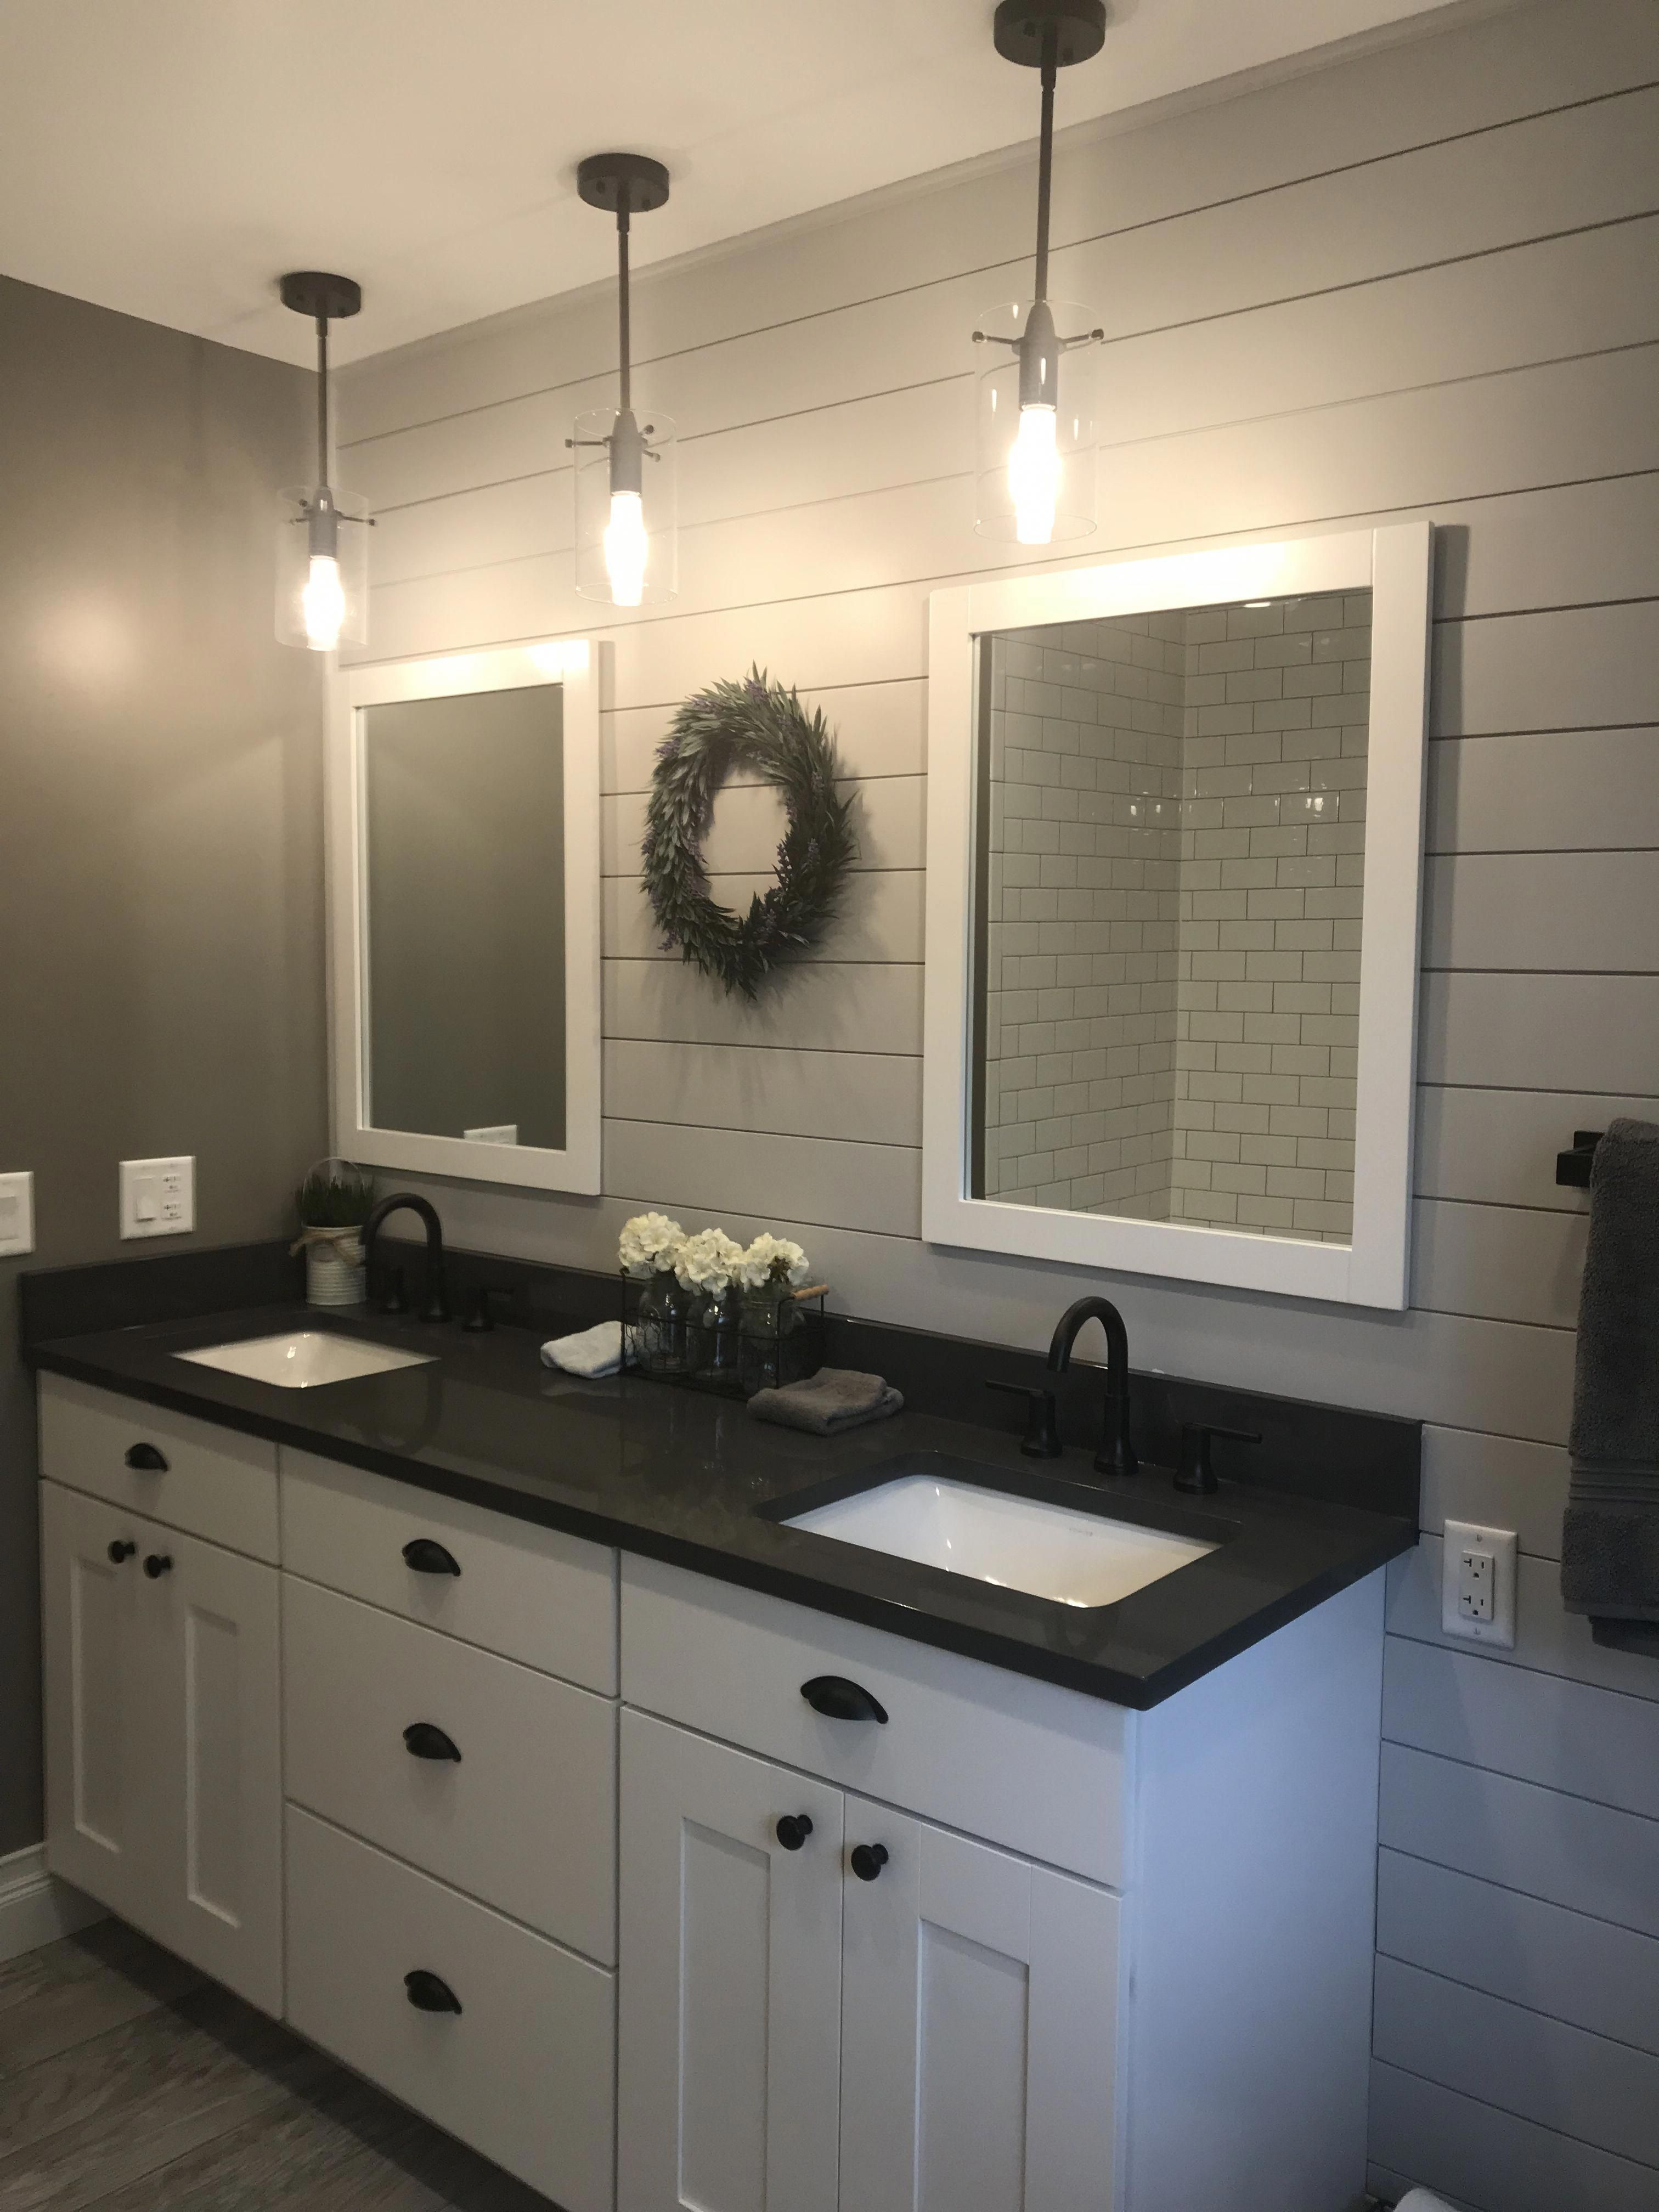 Farmhouse Bathroom Remodel Bathroomrenovationprojects Home